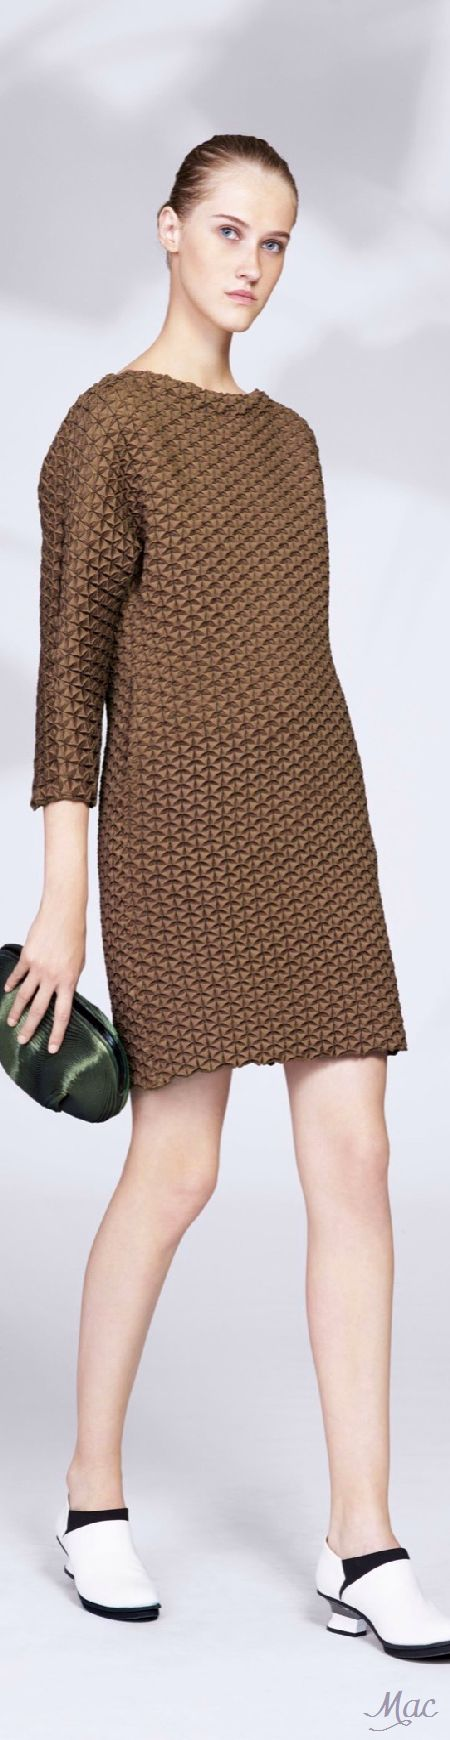 Resort 2016 Issey  women fashion outfit clothing stylish apparel @roressclothes closet ideas